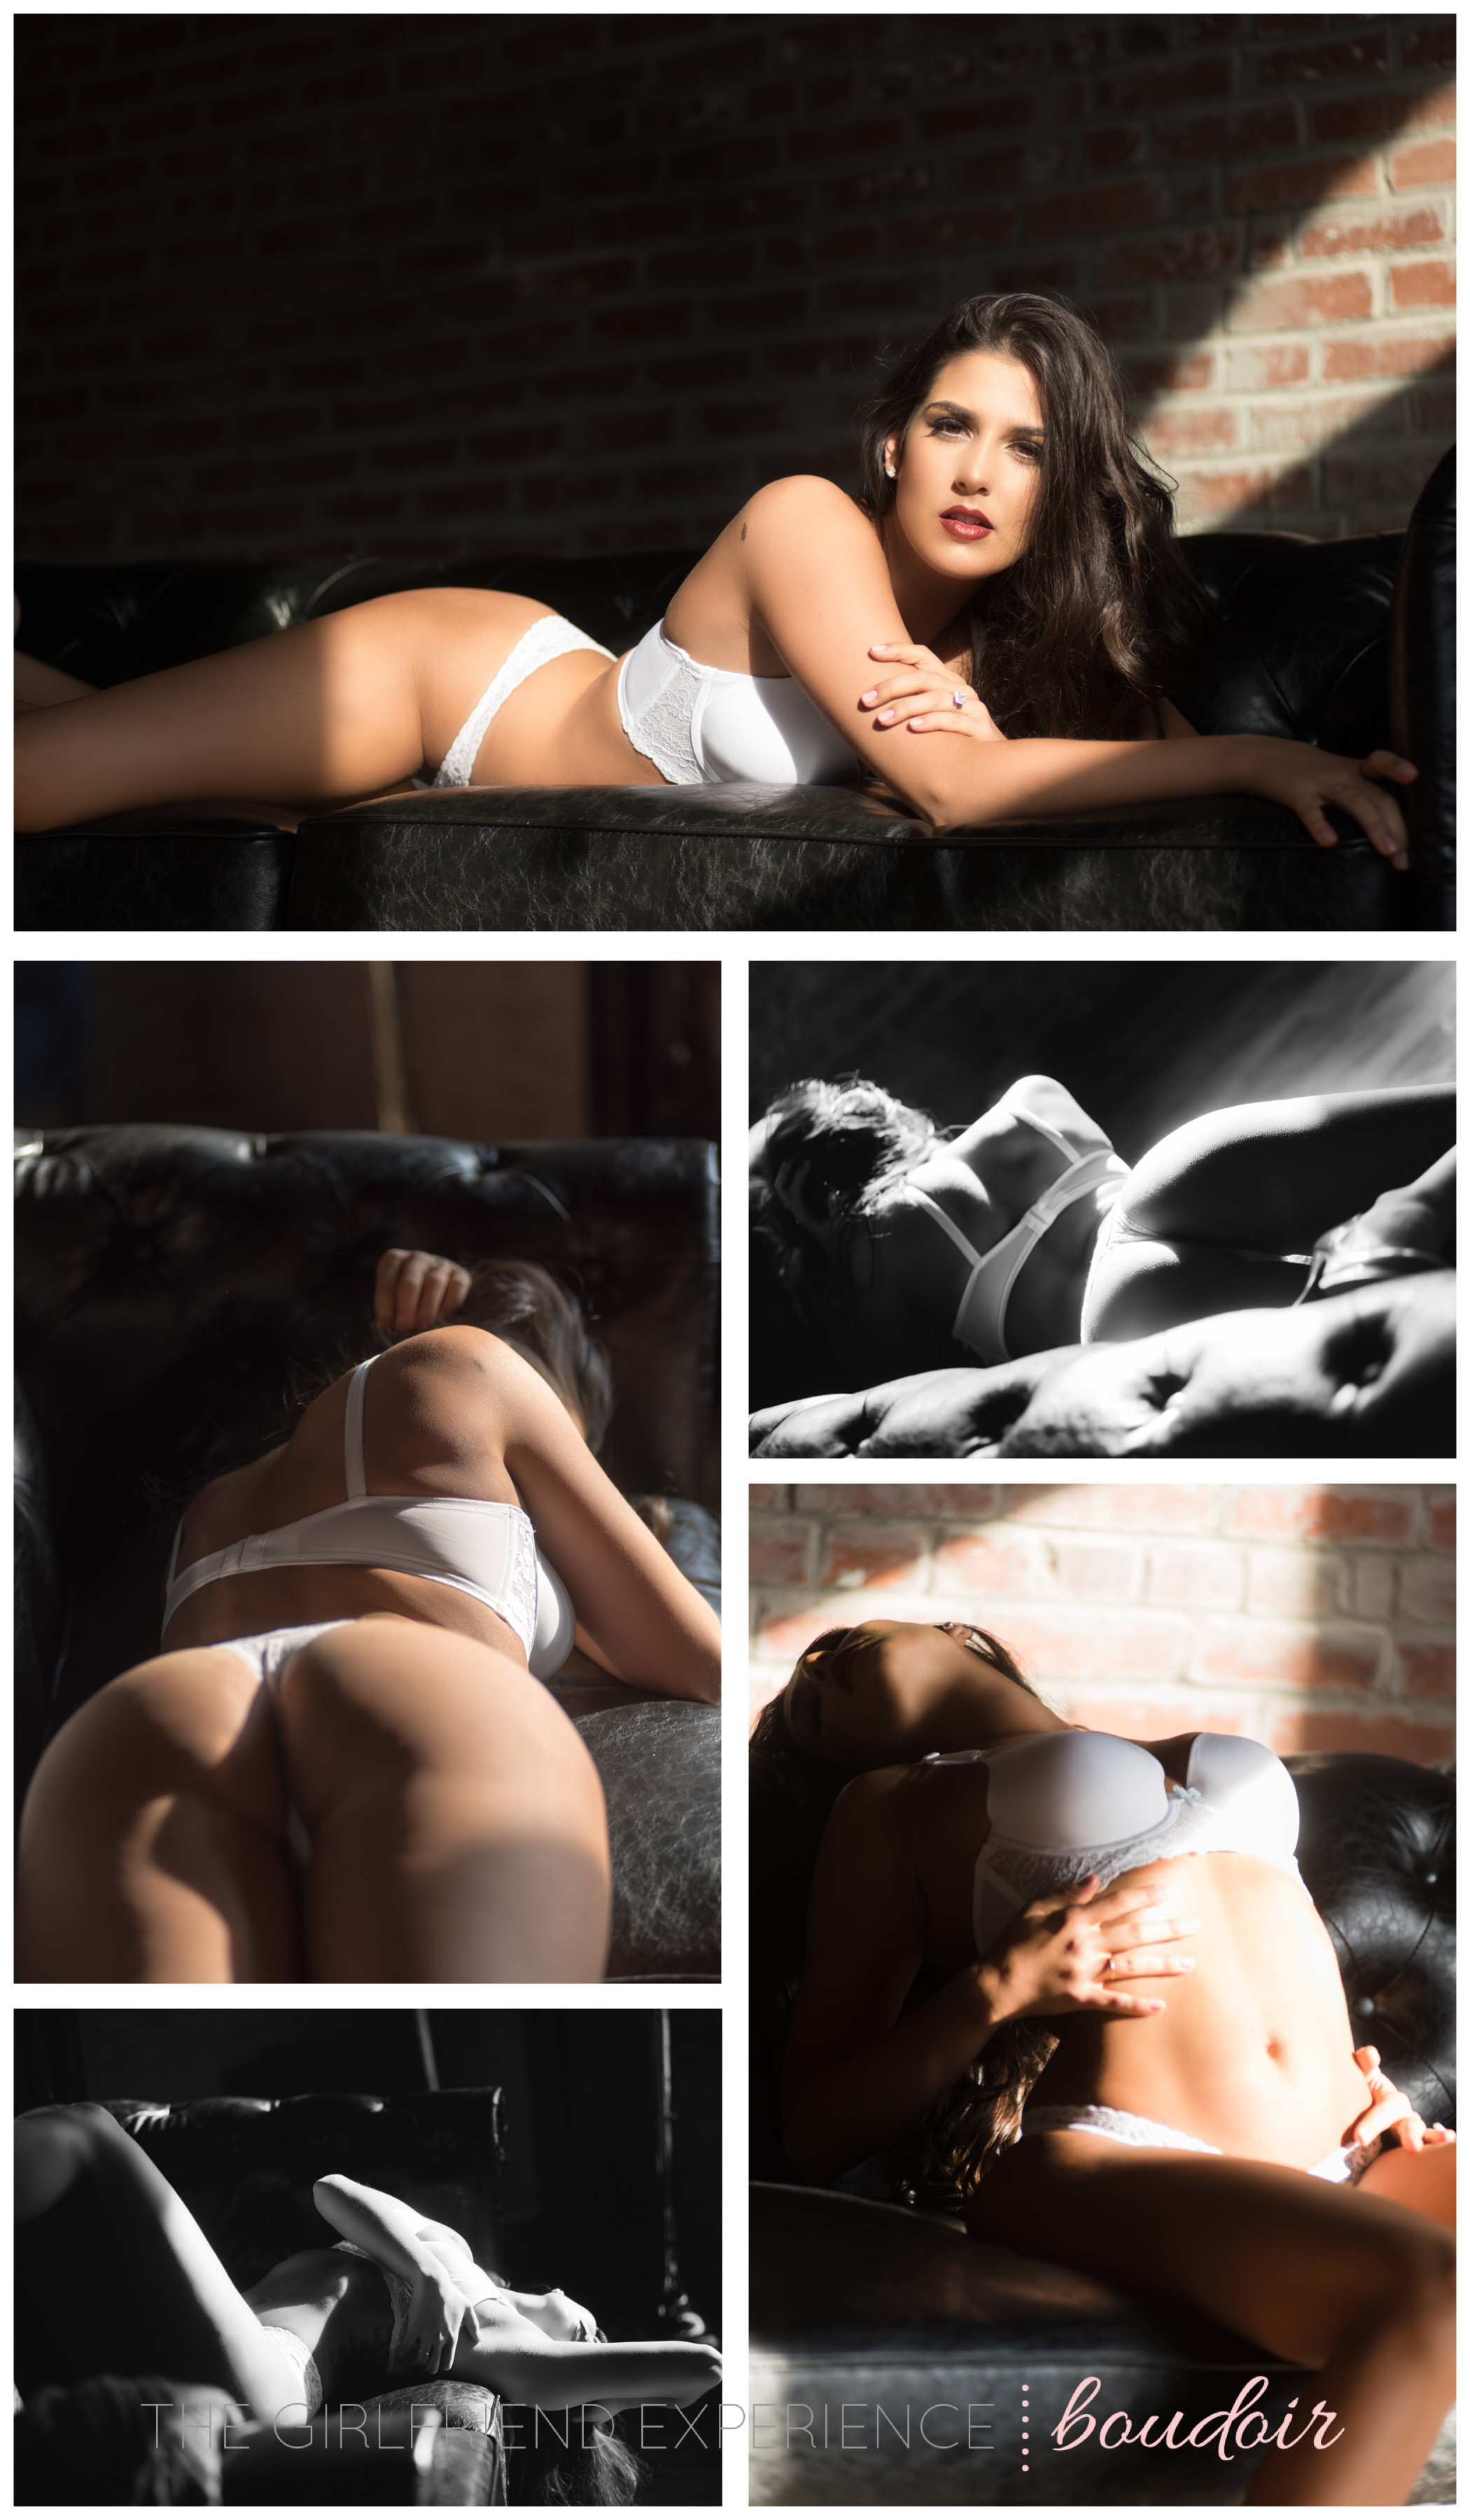 PittsburghsBestBoudoirPhotographer.jpg